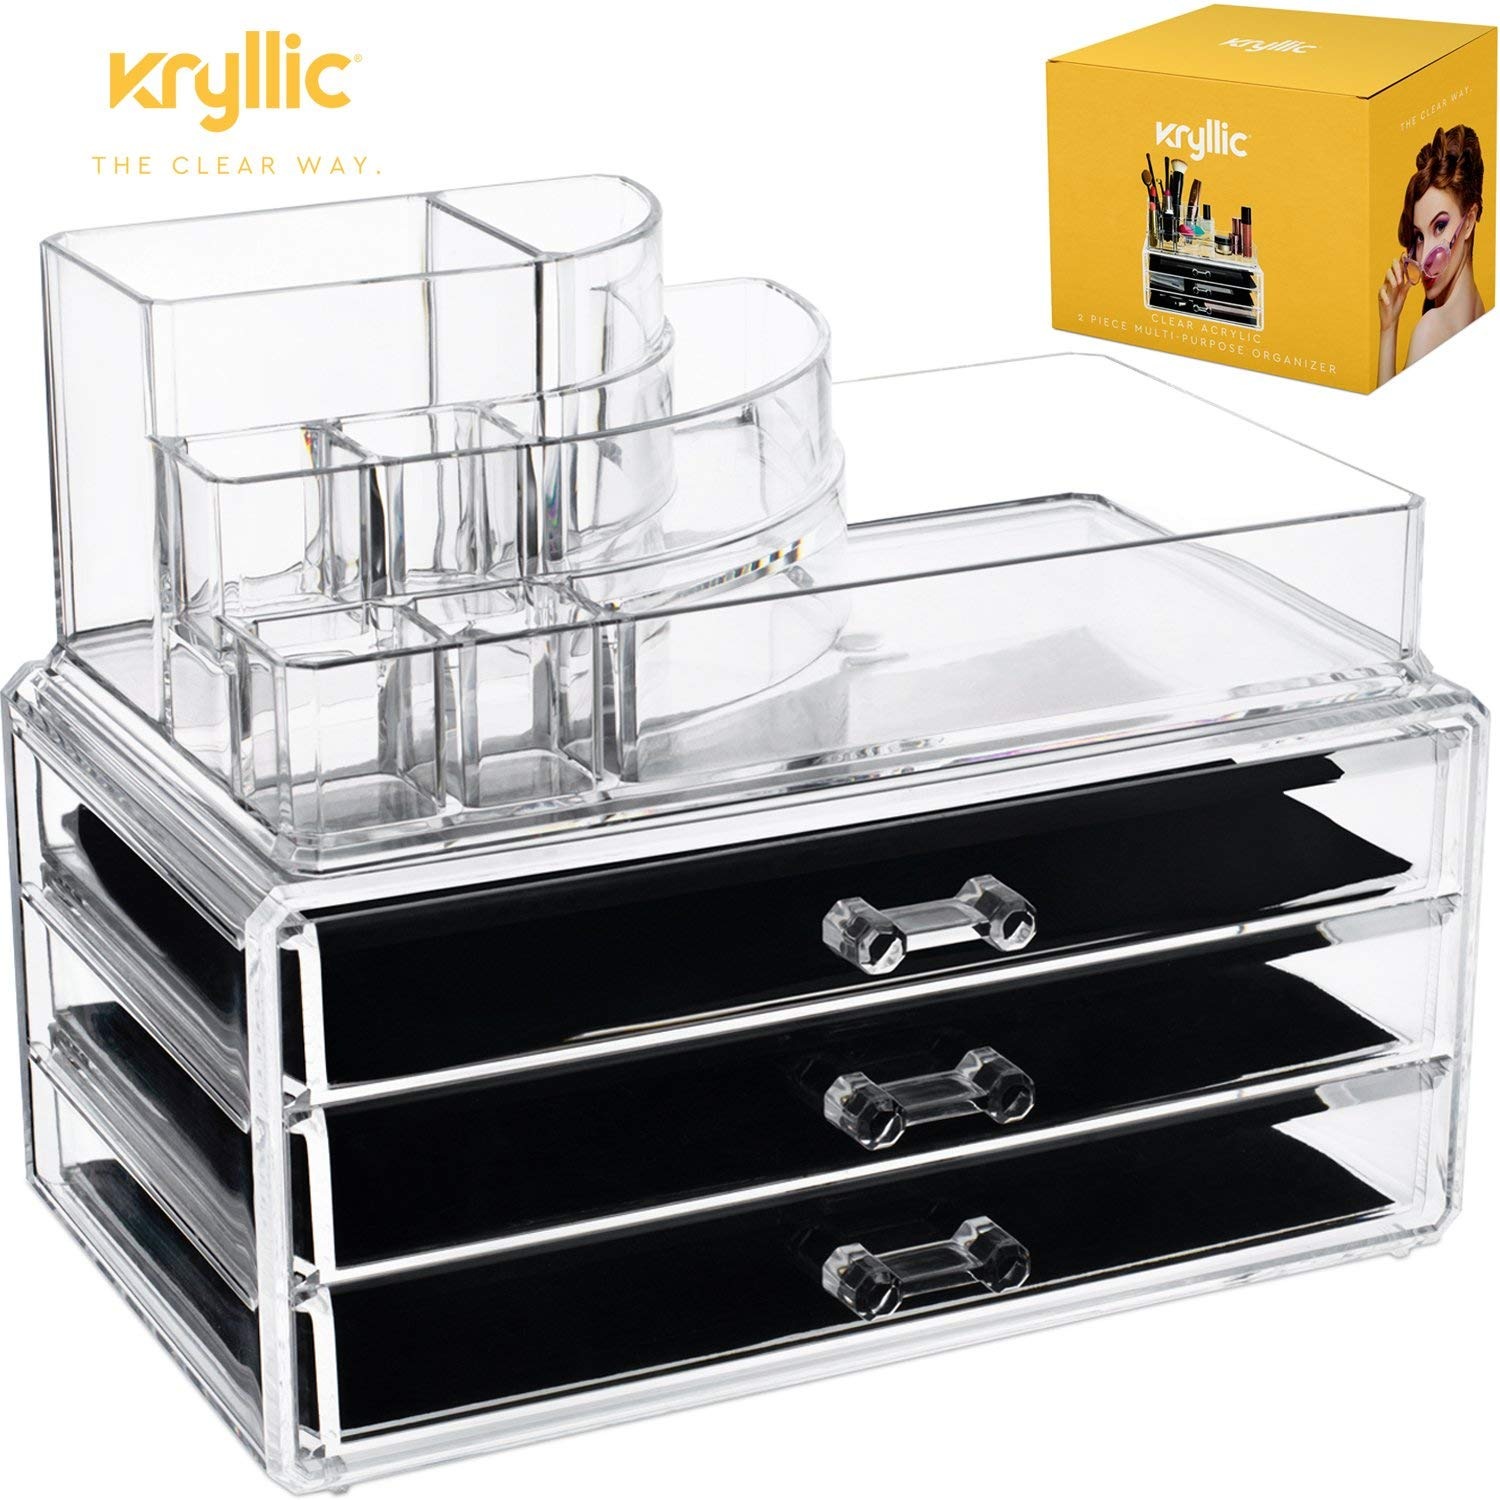 Acrylic Makeup Cosmetic Storage Organizer   3 Case Drawer With 8 Slot  Organizers For Brush Palette